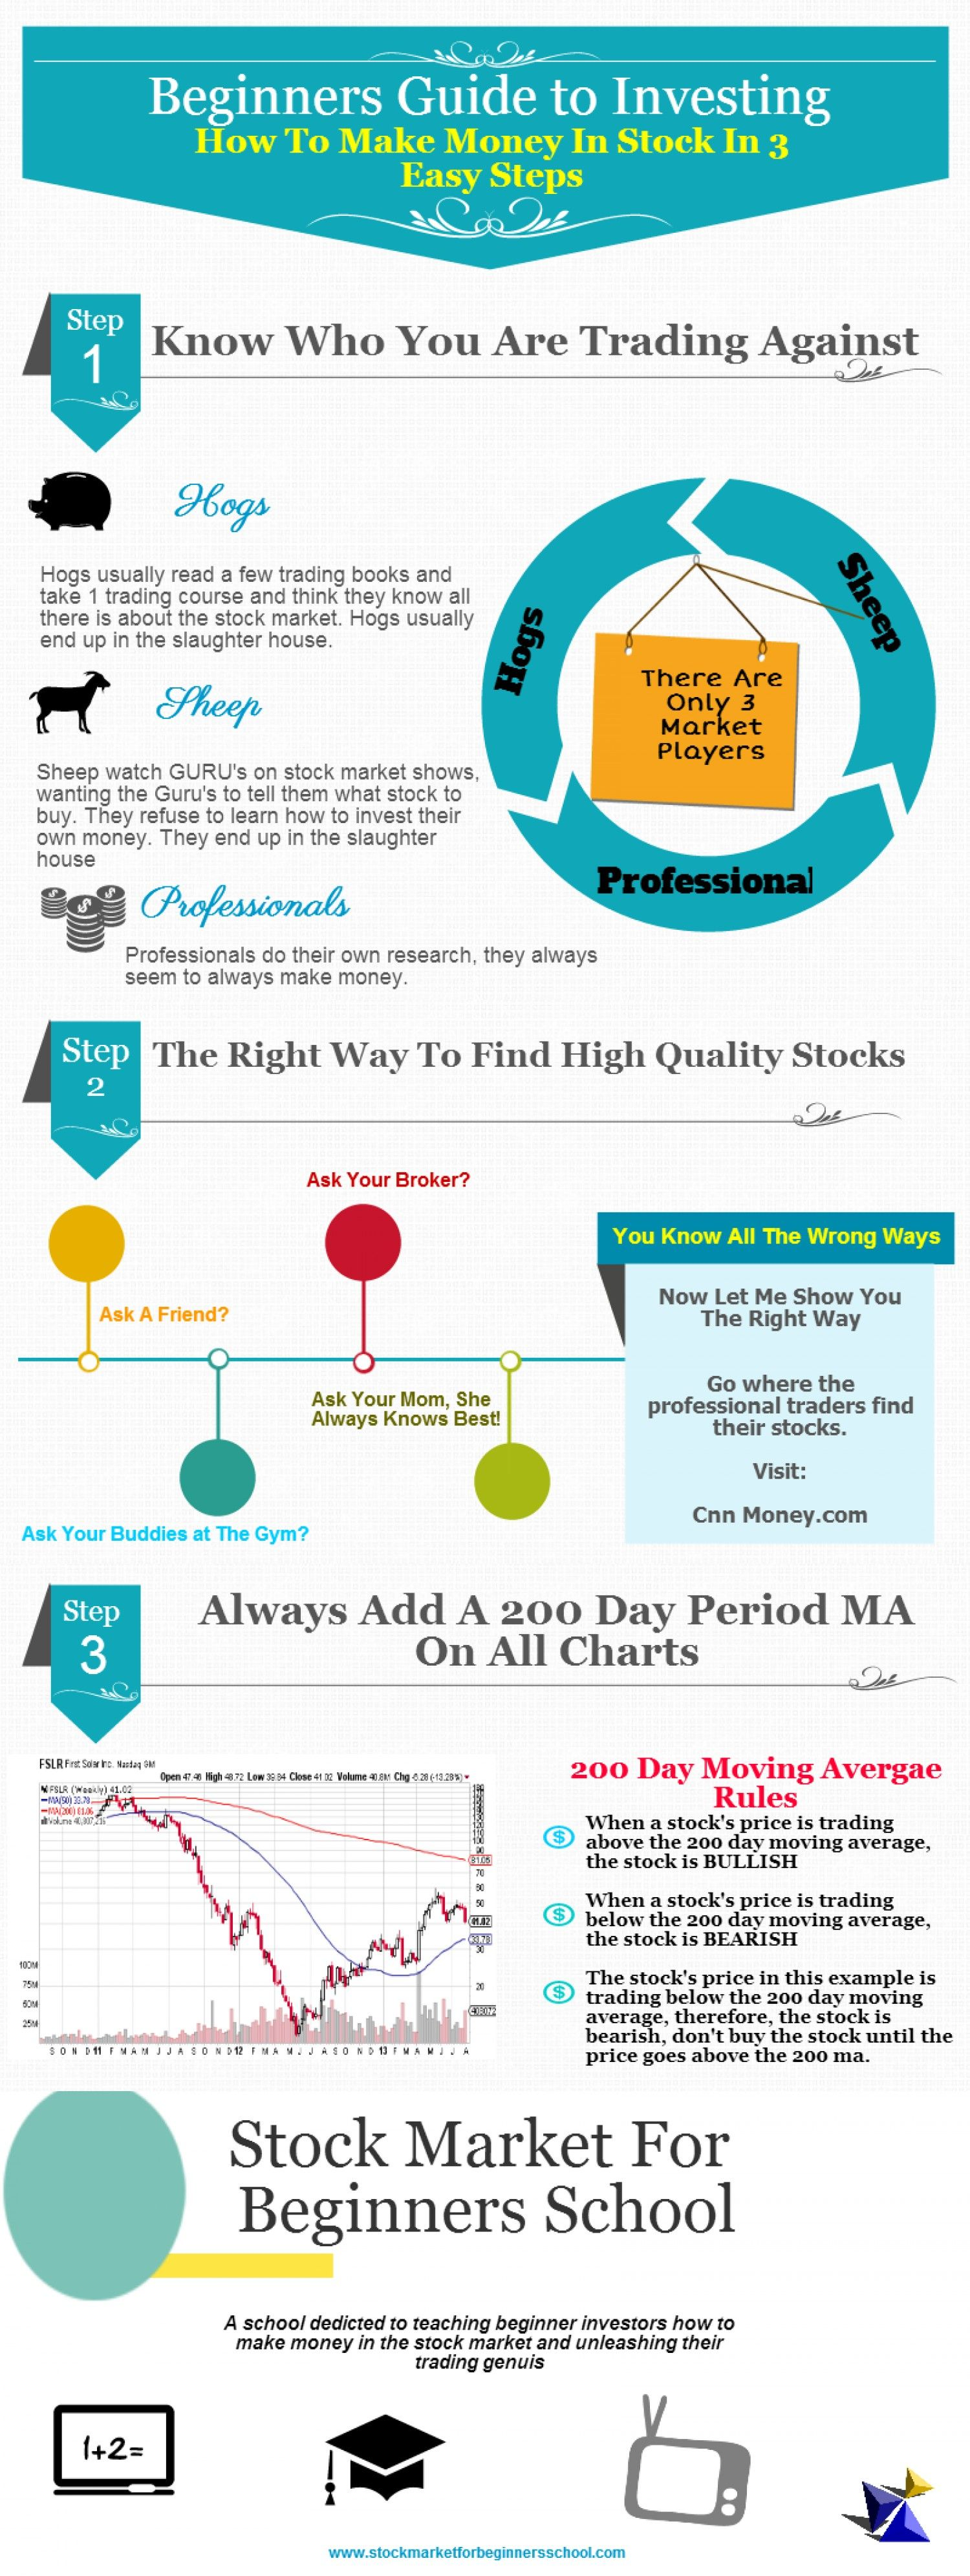 Beginners Guide to Investing Infographic | Investments | Trade finance, Investing, Stock market ...